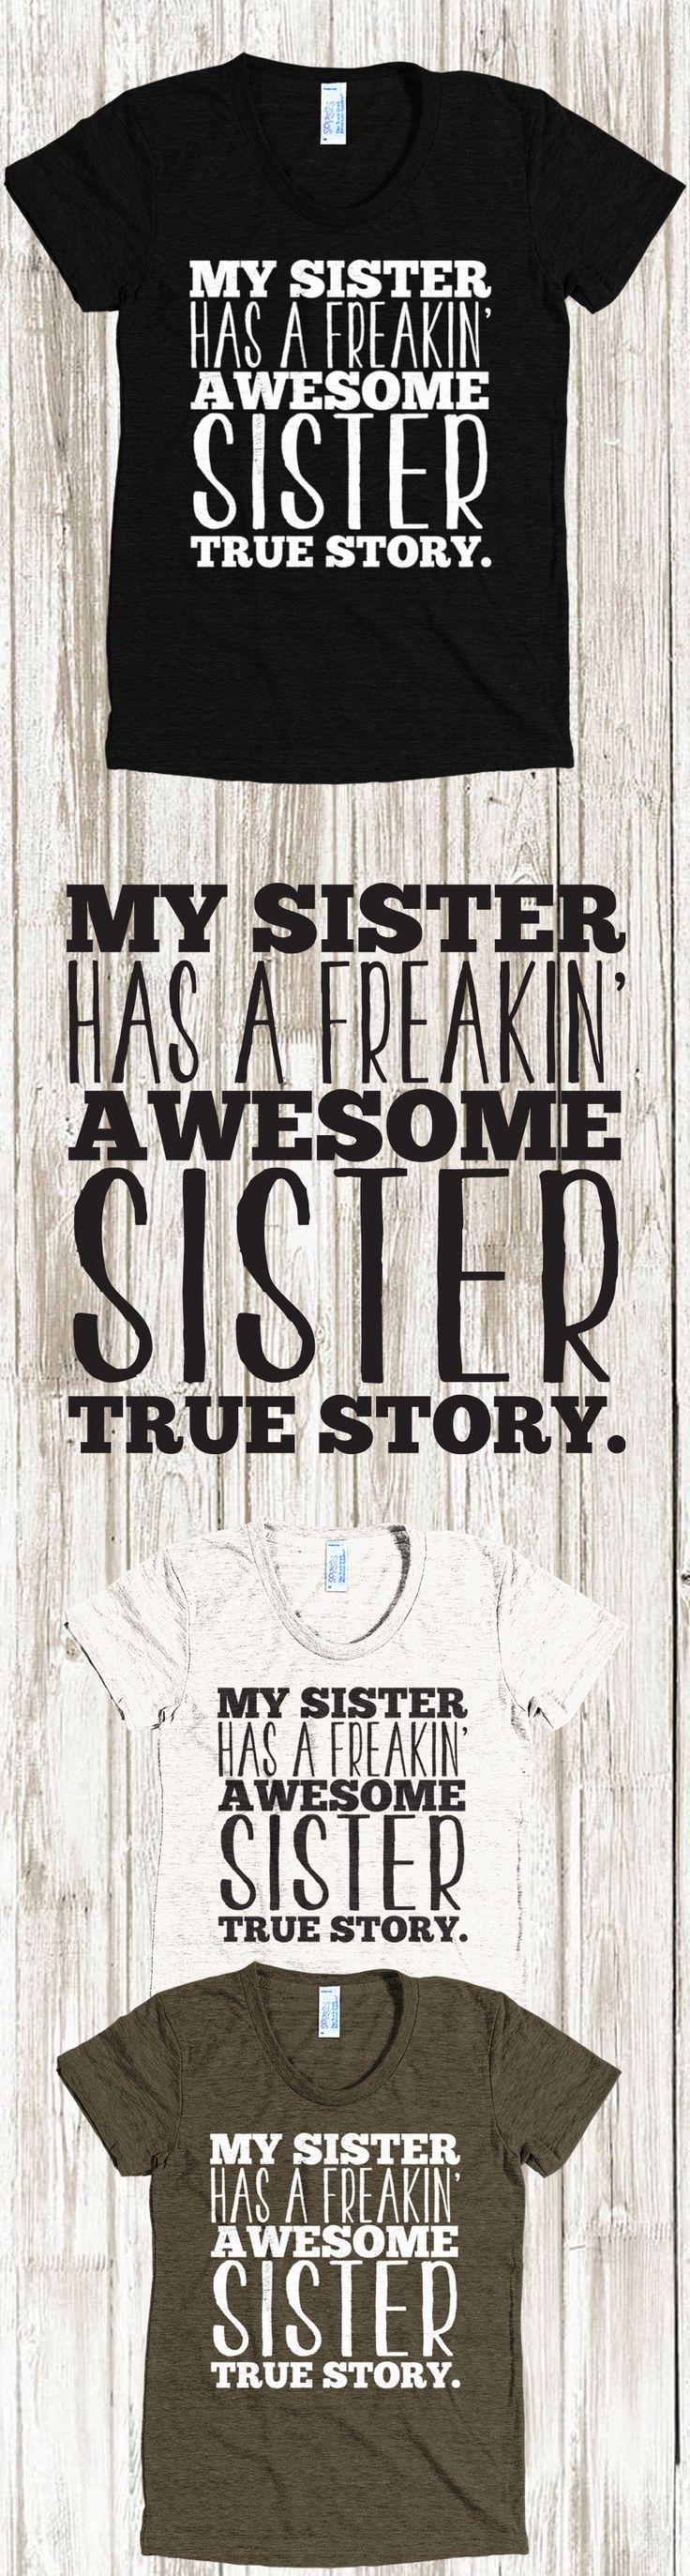 Did you know National Sister's Day is Aug 7th?Check out this awesome My Sister Has an Awesome Sister t-shirt you will not find anywhere else. Not sold in stores and only 2 days left for free shipping! Grab yours or gift it to a friend, you will both love it